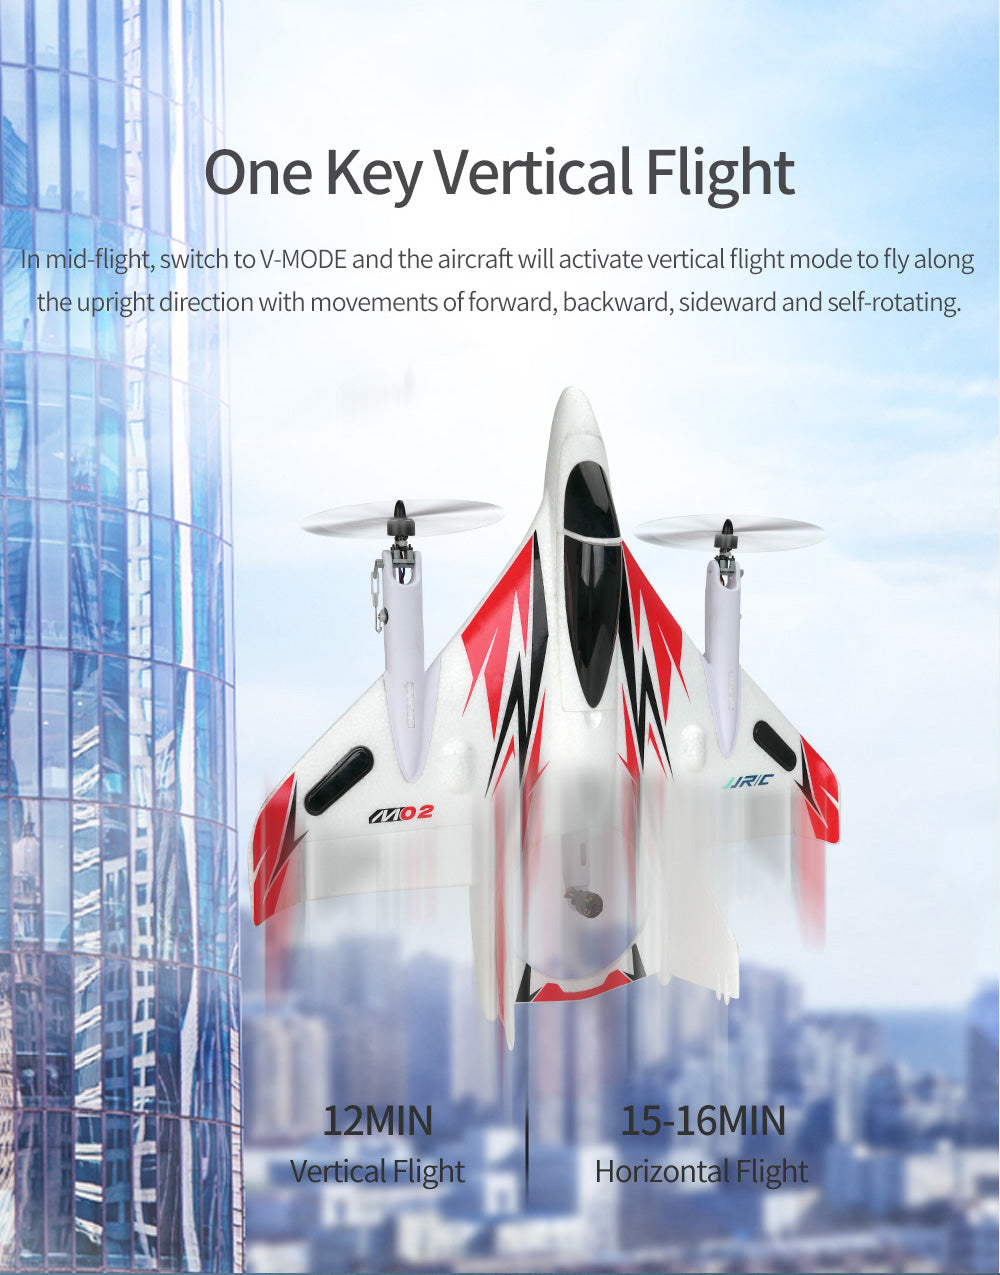 One Key Verti cat Flight,In mid-fight, switch to V-MODE and the aircraft wil activate vertical fight mode to fly along,the upright direction with movements of forward, backward, side ward and self-rotating.